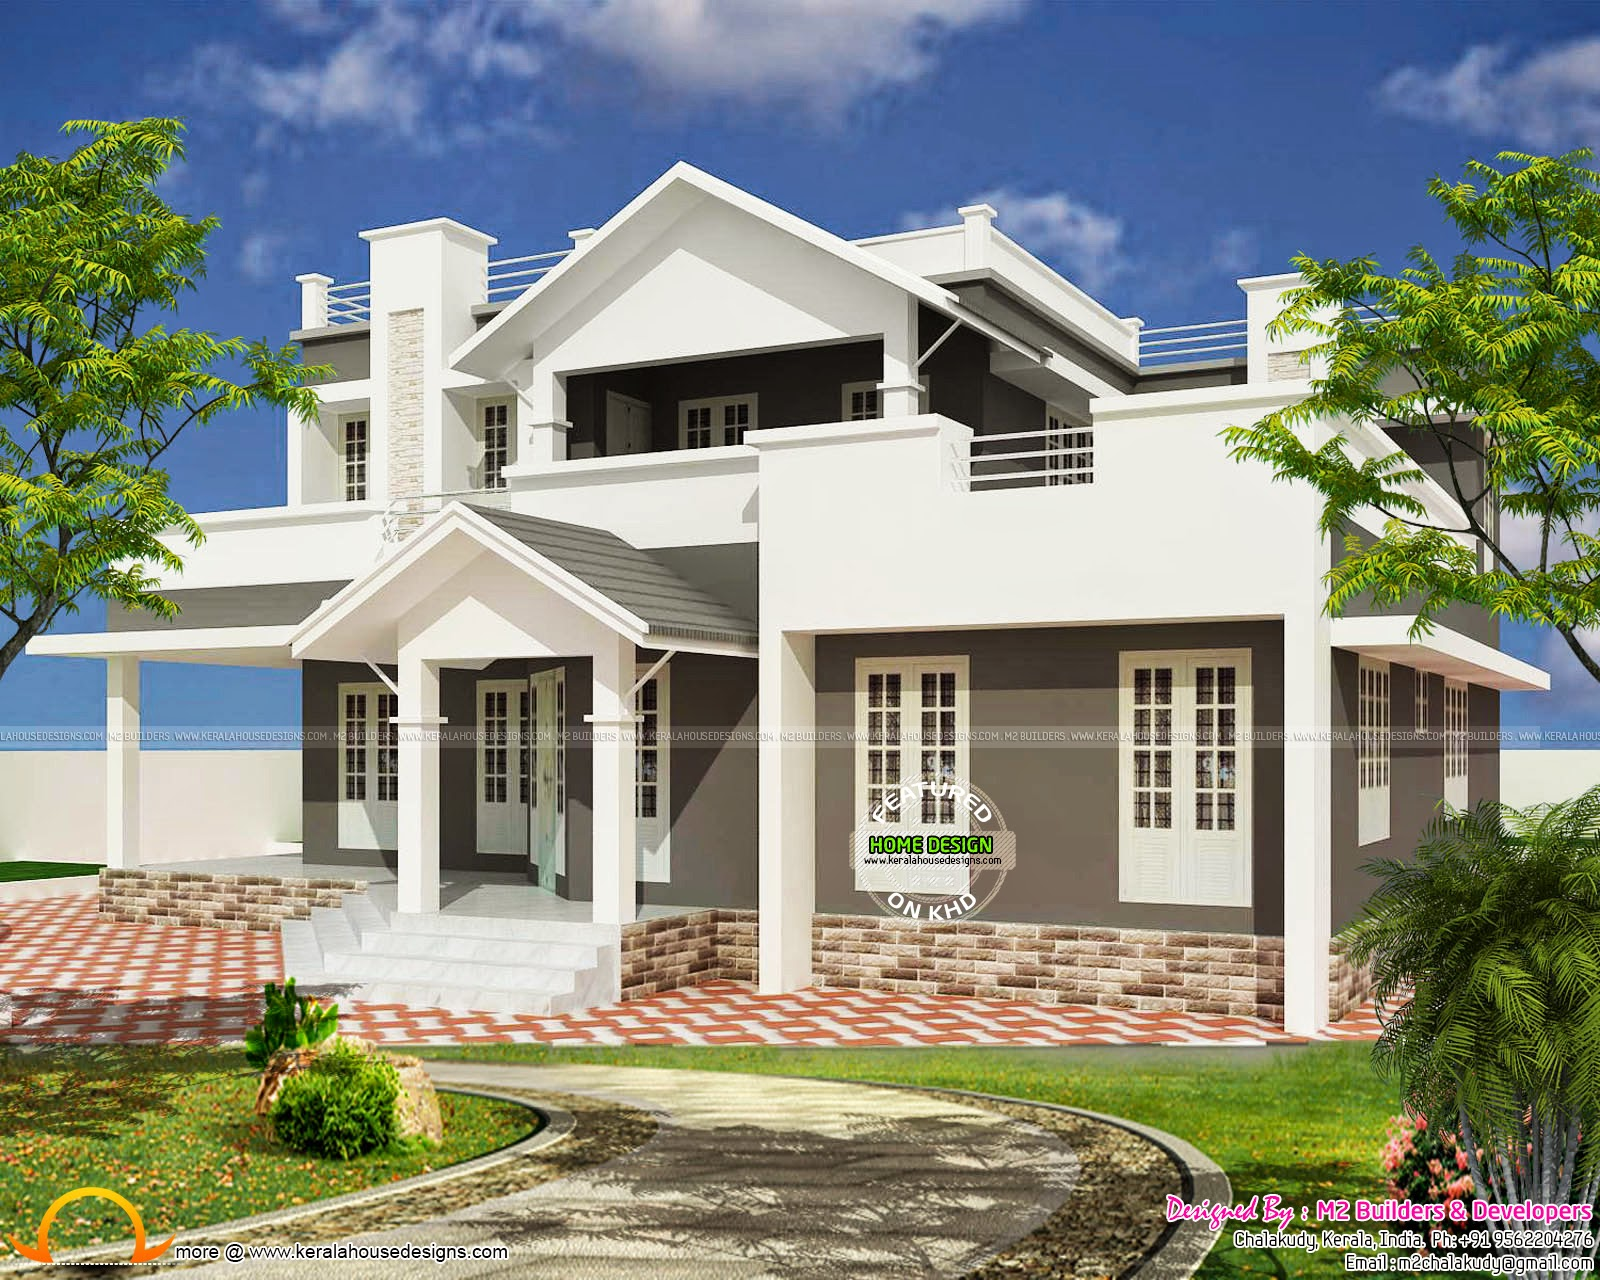 House Design By M2 Builders In Chalakudy Kerala Home